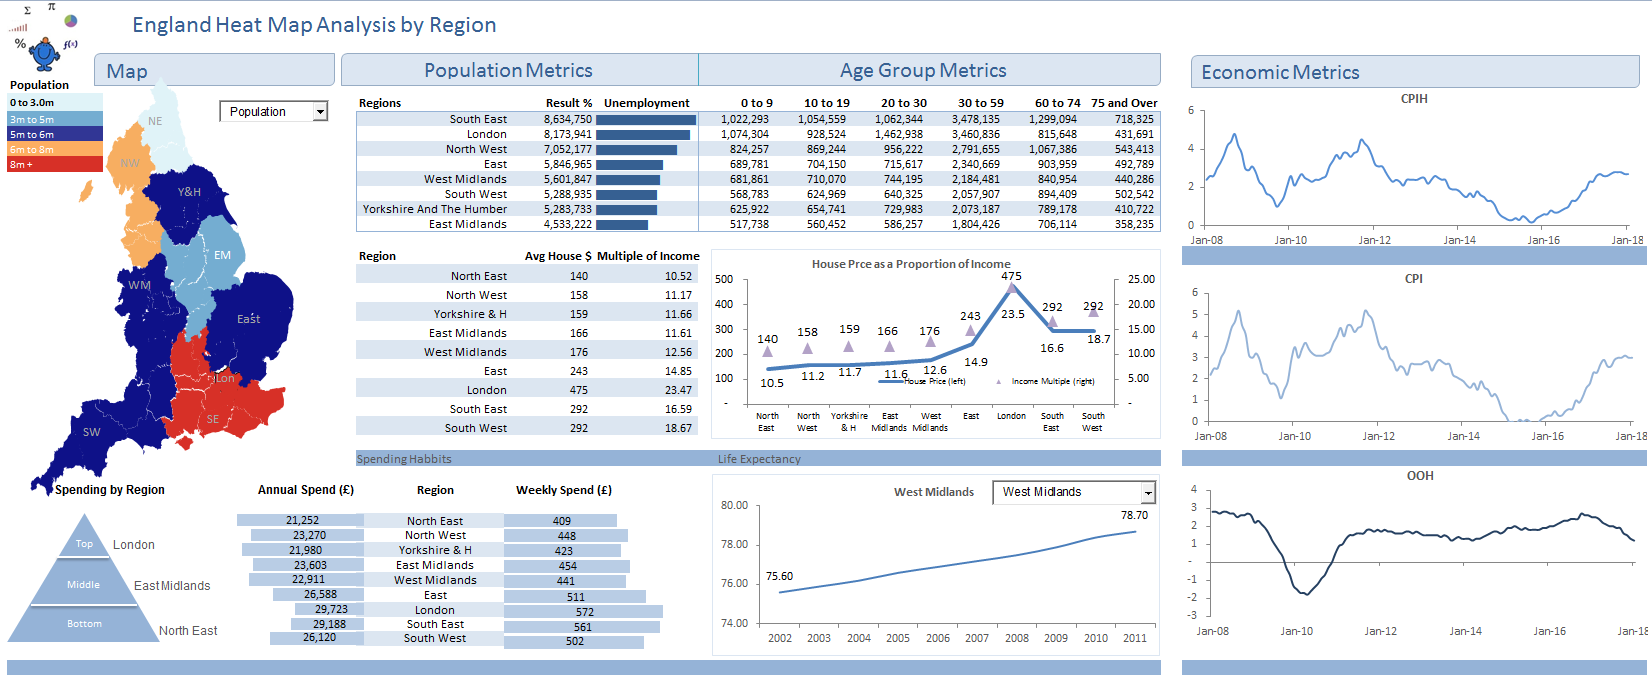 The above is the finished Excel Dashboard. It has a cleaner look and more data.